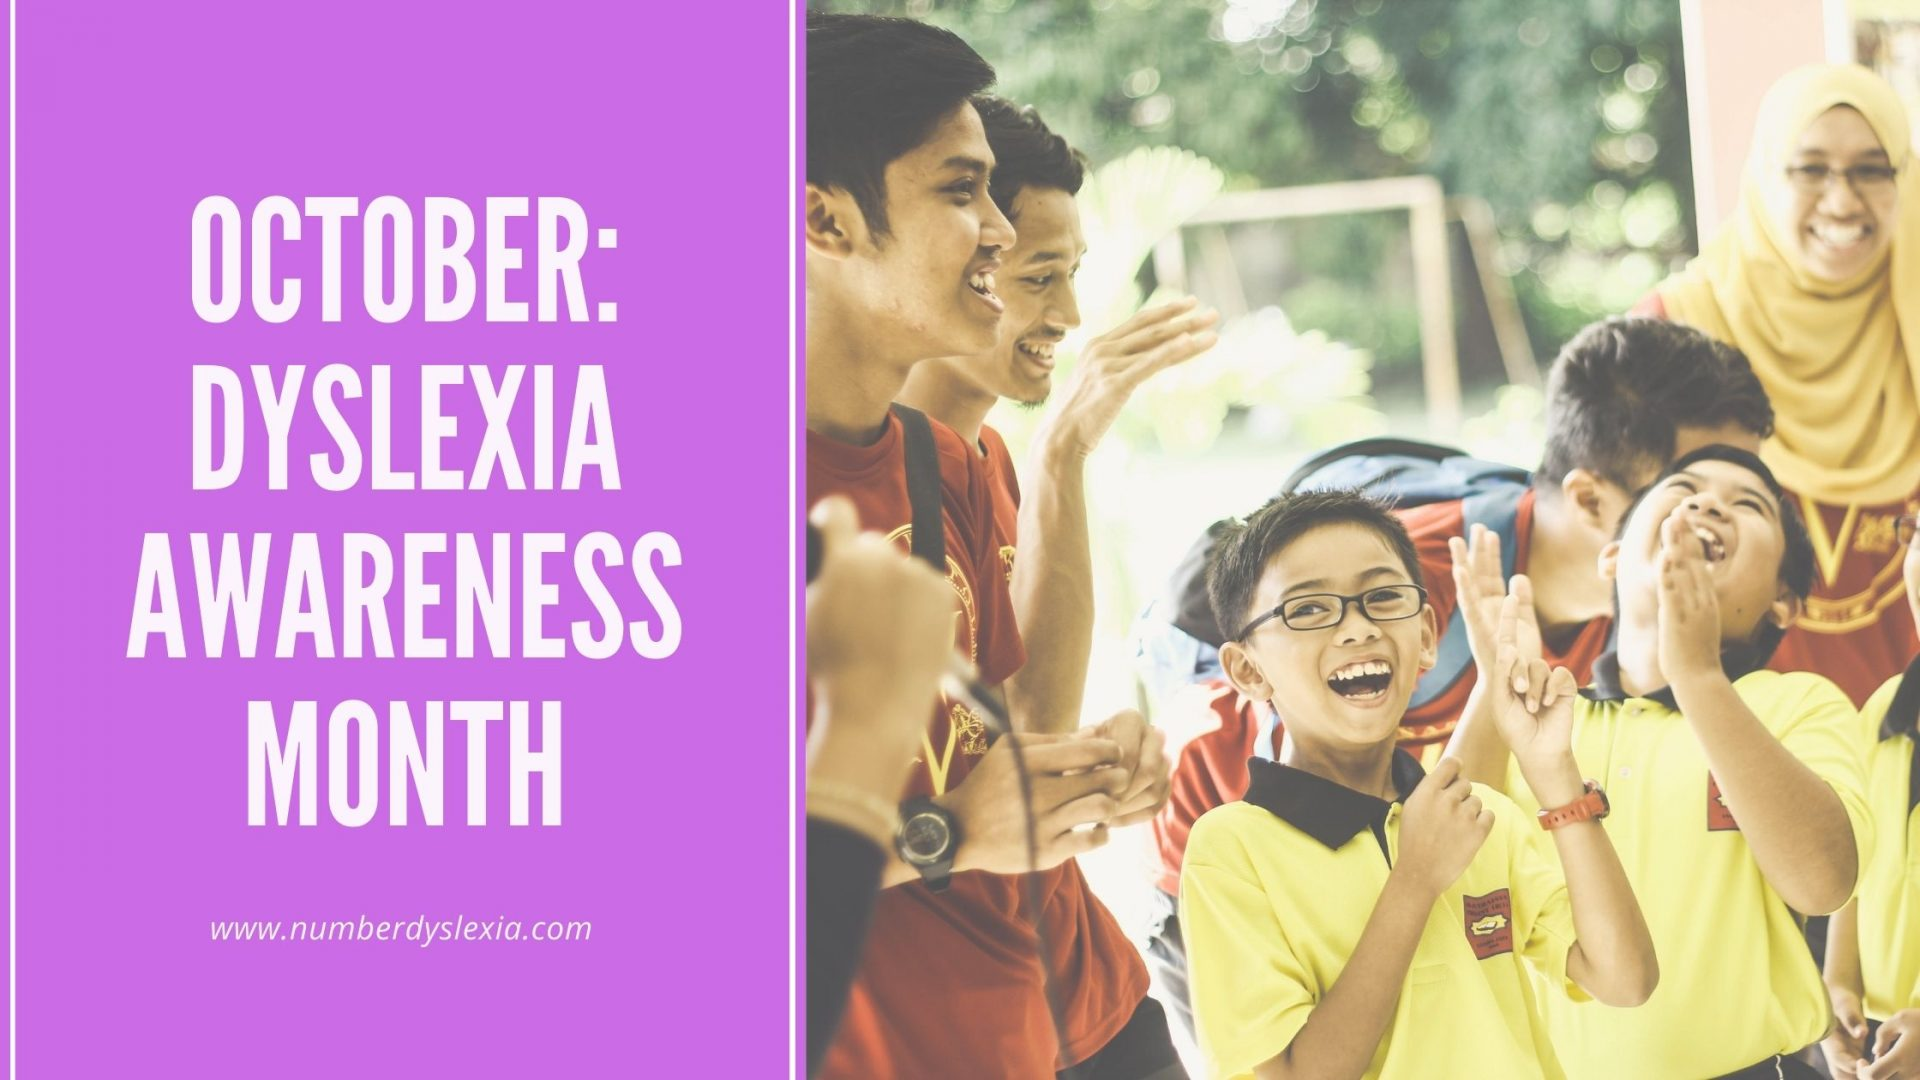 OCtober dyslexia awareness month poster